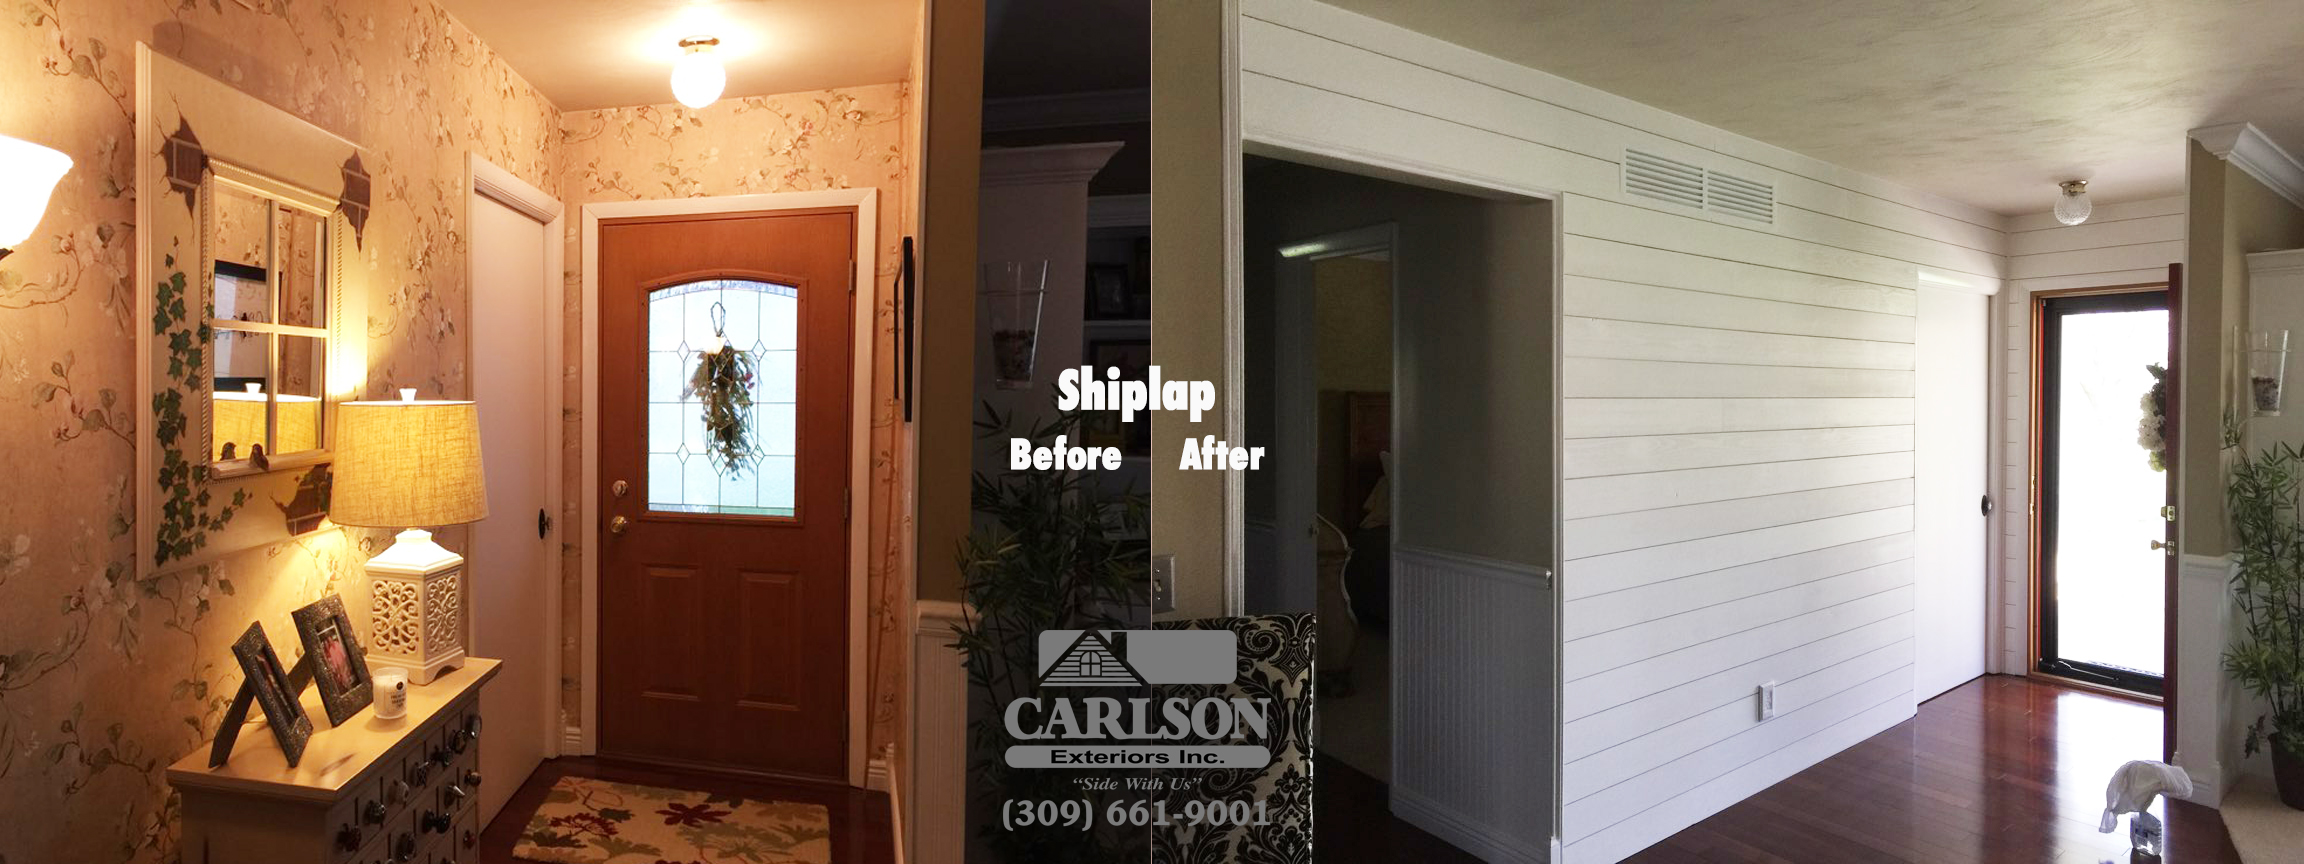 Mary Took Shiplap Install In Entry Way Danvers Il